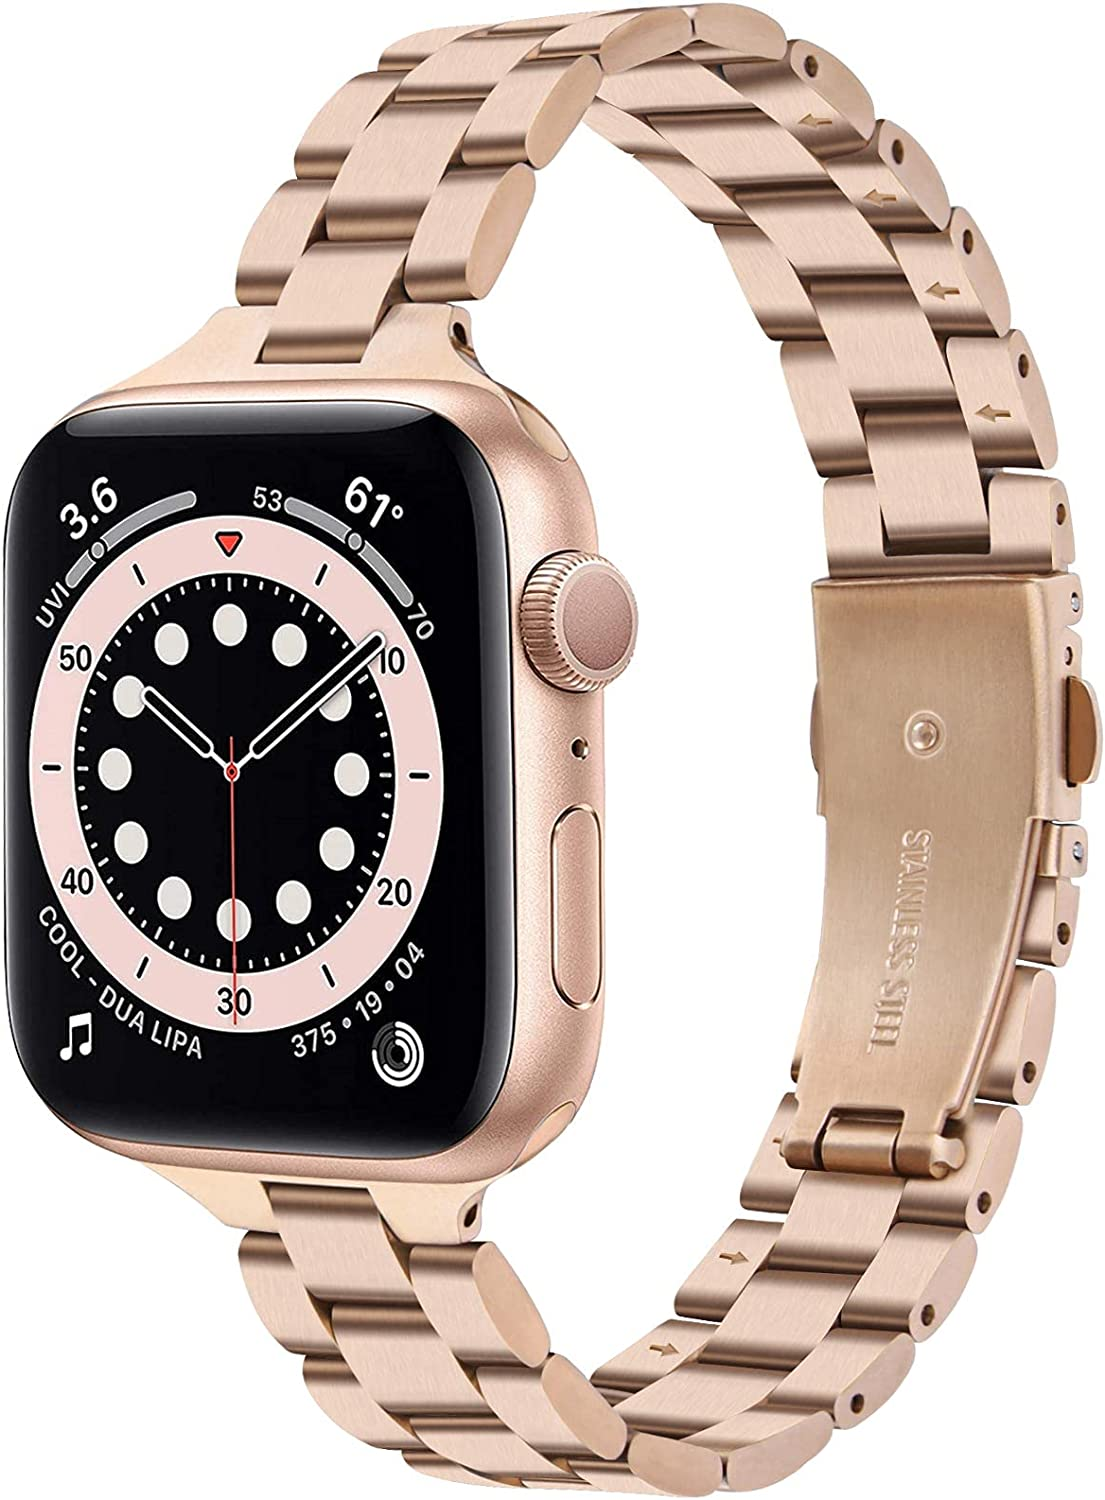 Slim Metal Band Compatible with Apple Watch Series 6/5/4/3 38mm 40mm, CAGOS iWatch Strap Stainless Steel Link Bracelet Replacement for Women Girls Men (Rose Gold, 38mm/40mm)